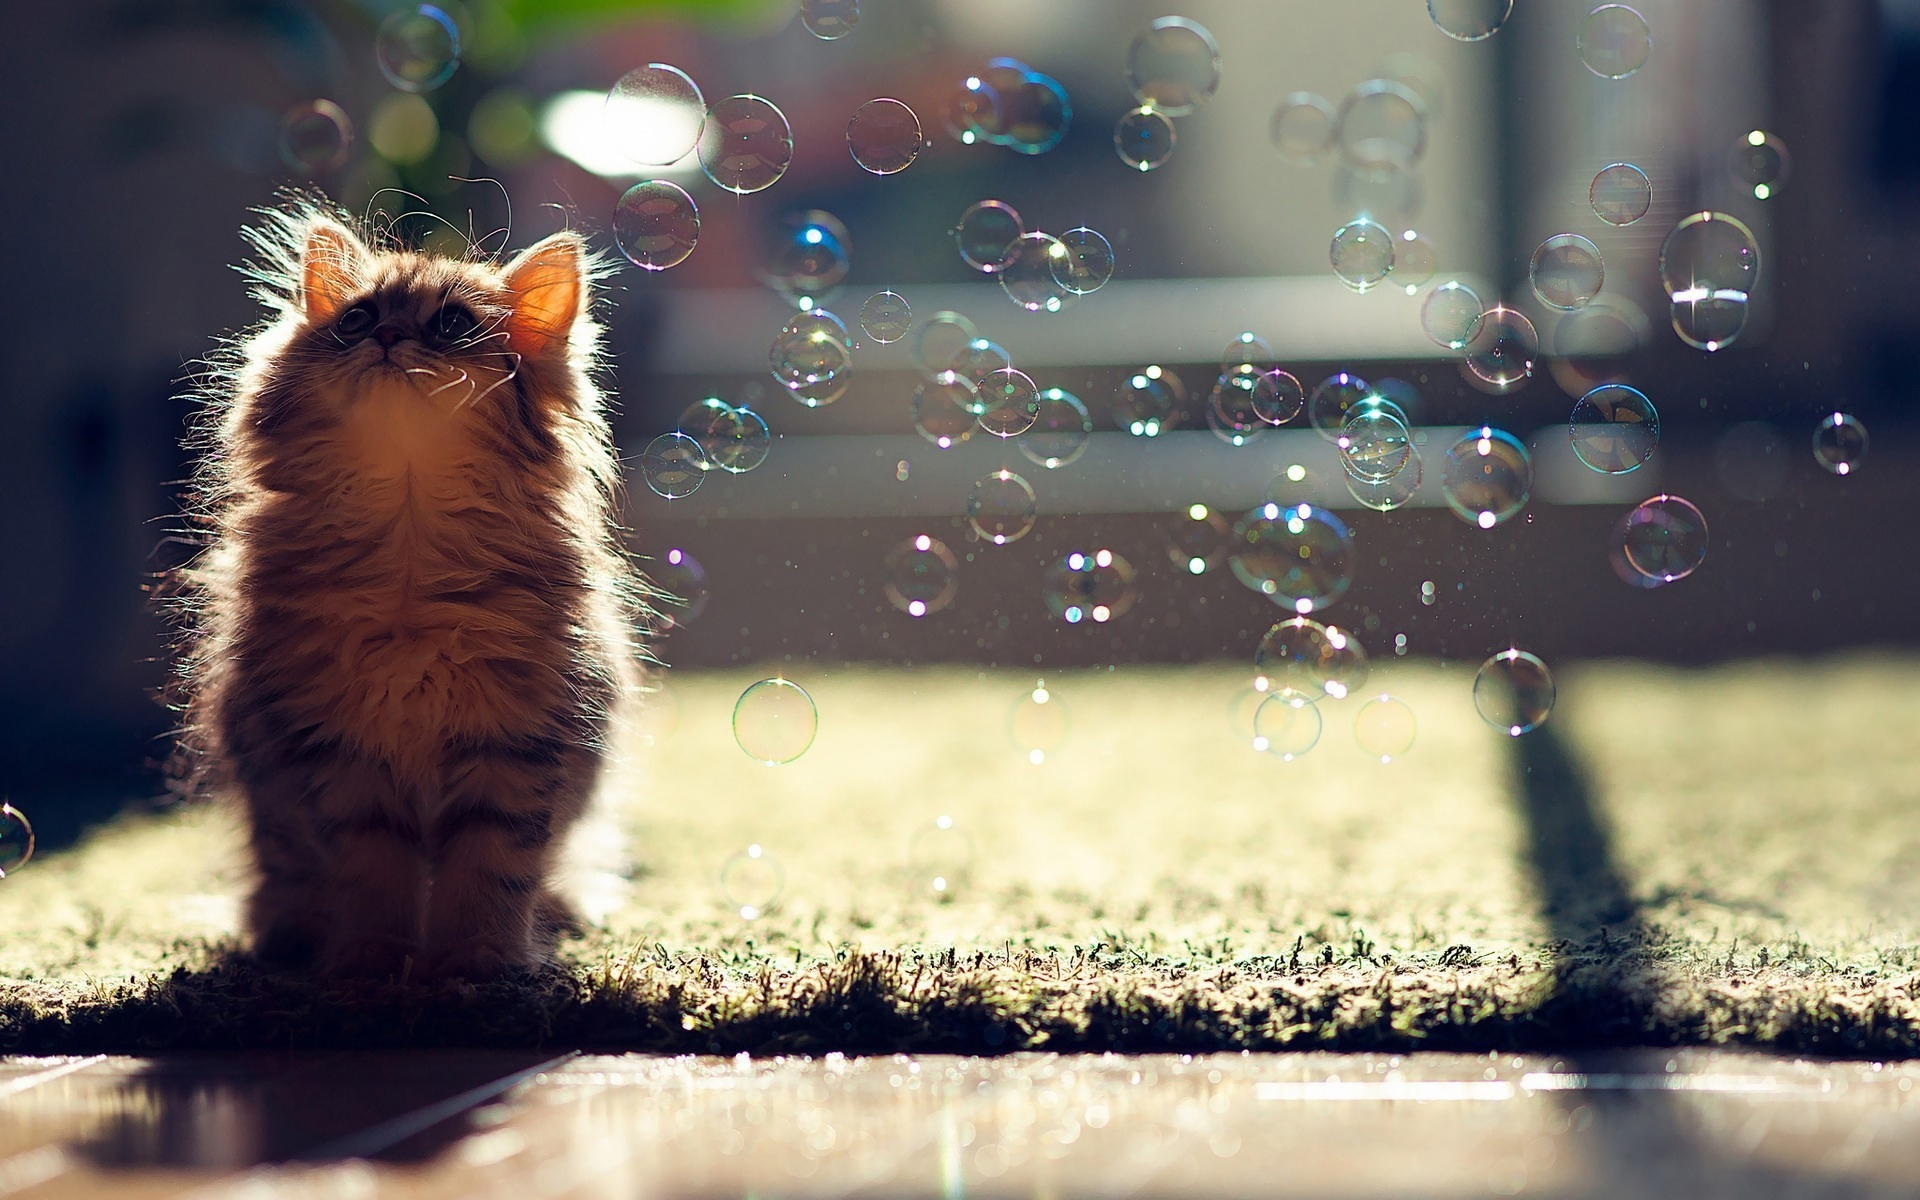 22201 download wallpaper Animals, Cats, Bubbles screensavers and pictures for free